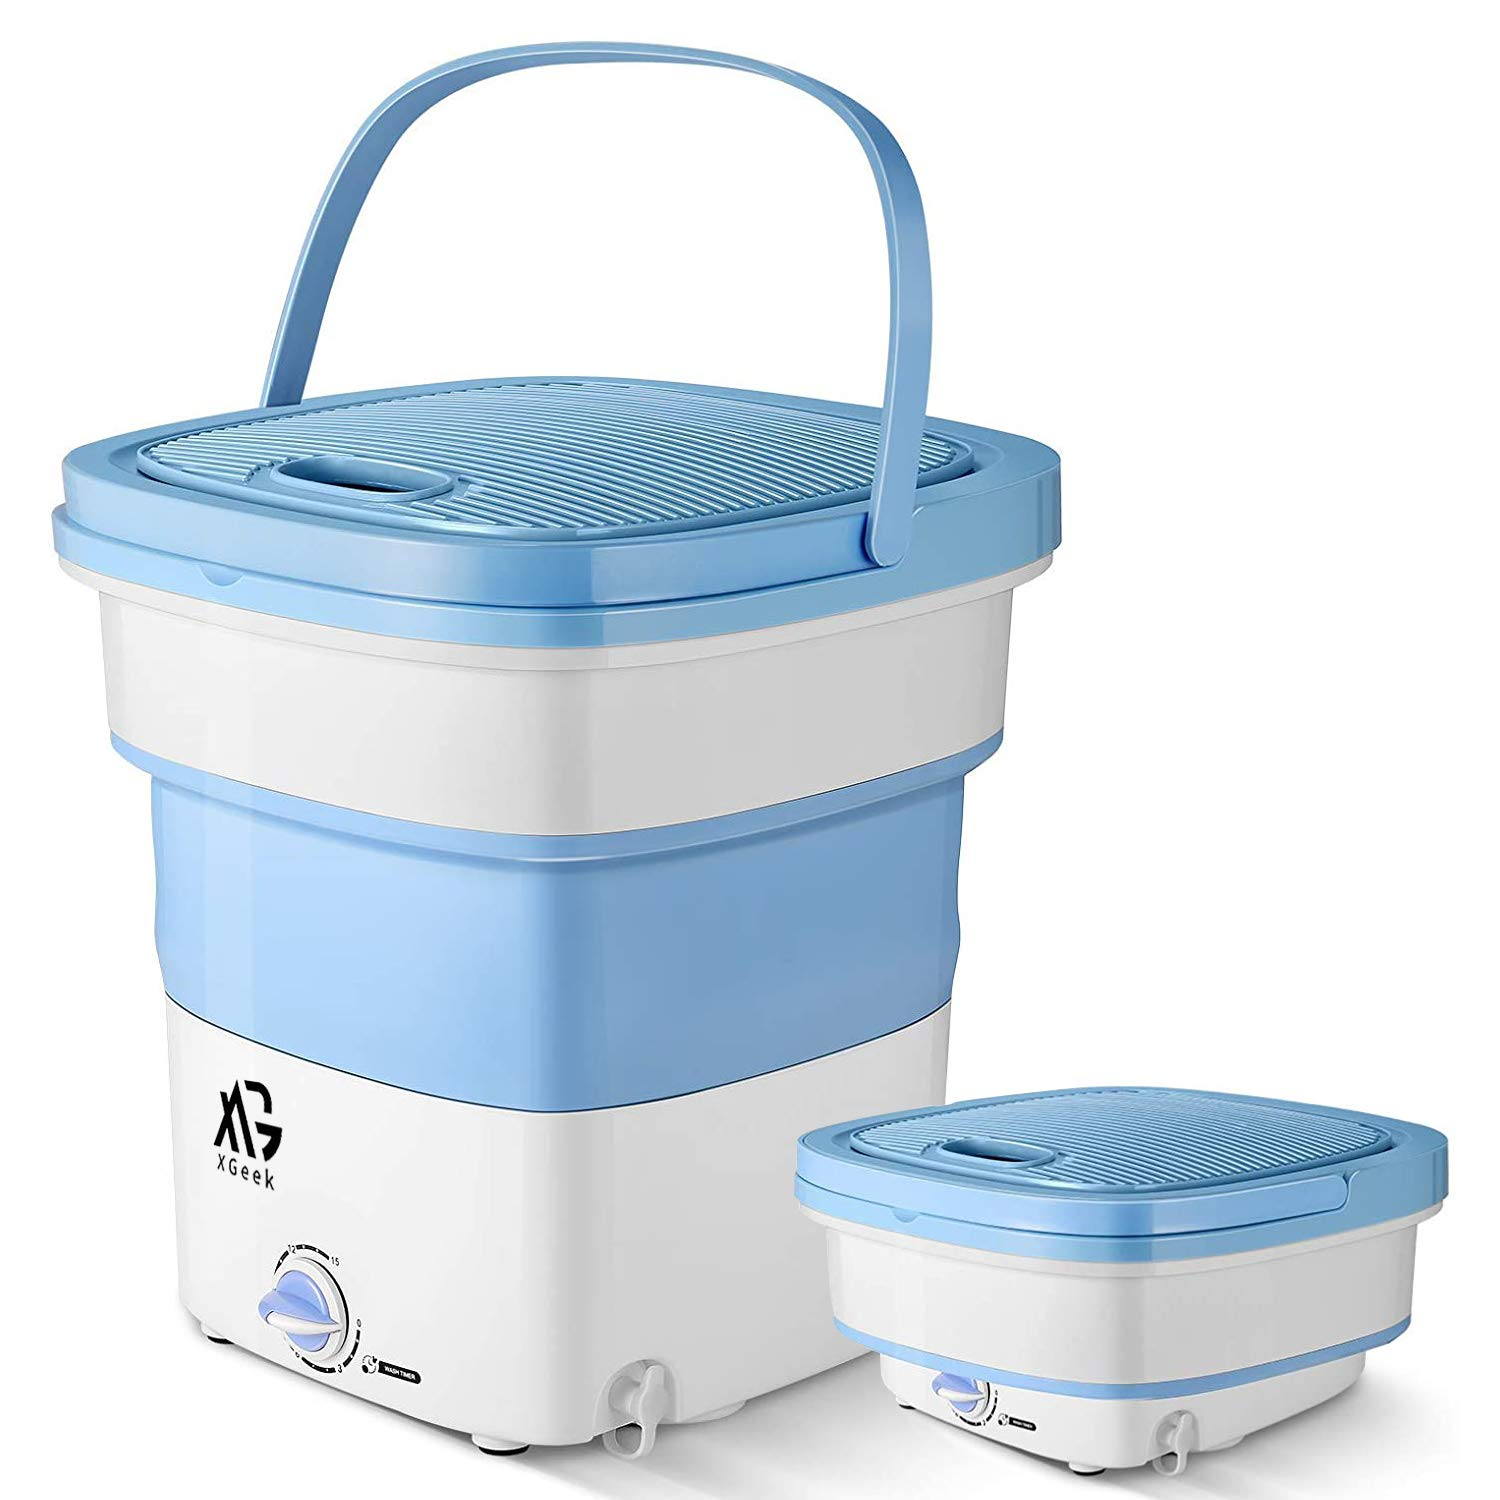 XGeek Folding Portable Mini Washing Machine Dc Portable Washer,Large Capacity 3.2 kgs,Timing Control,Disinfection Function,Washing Women And Child Underwear,19.5cm,Easy To Store And Carry